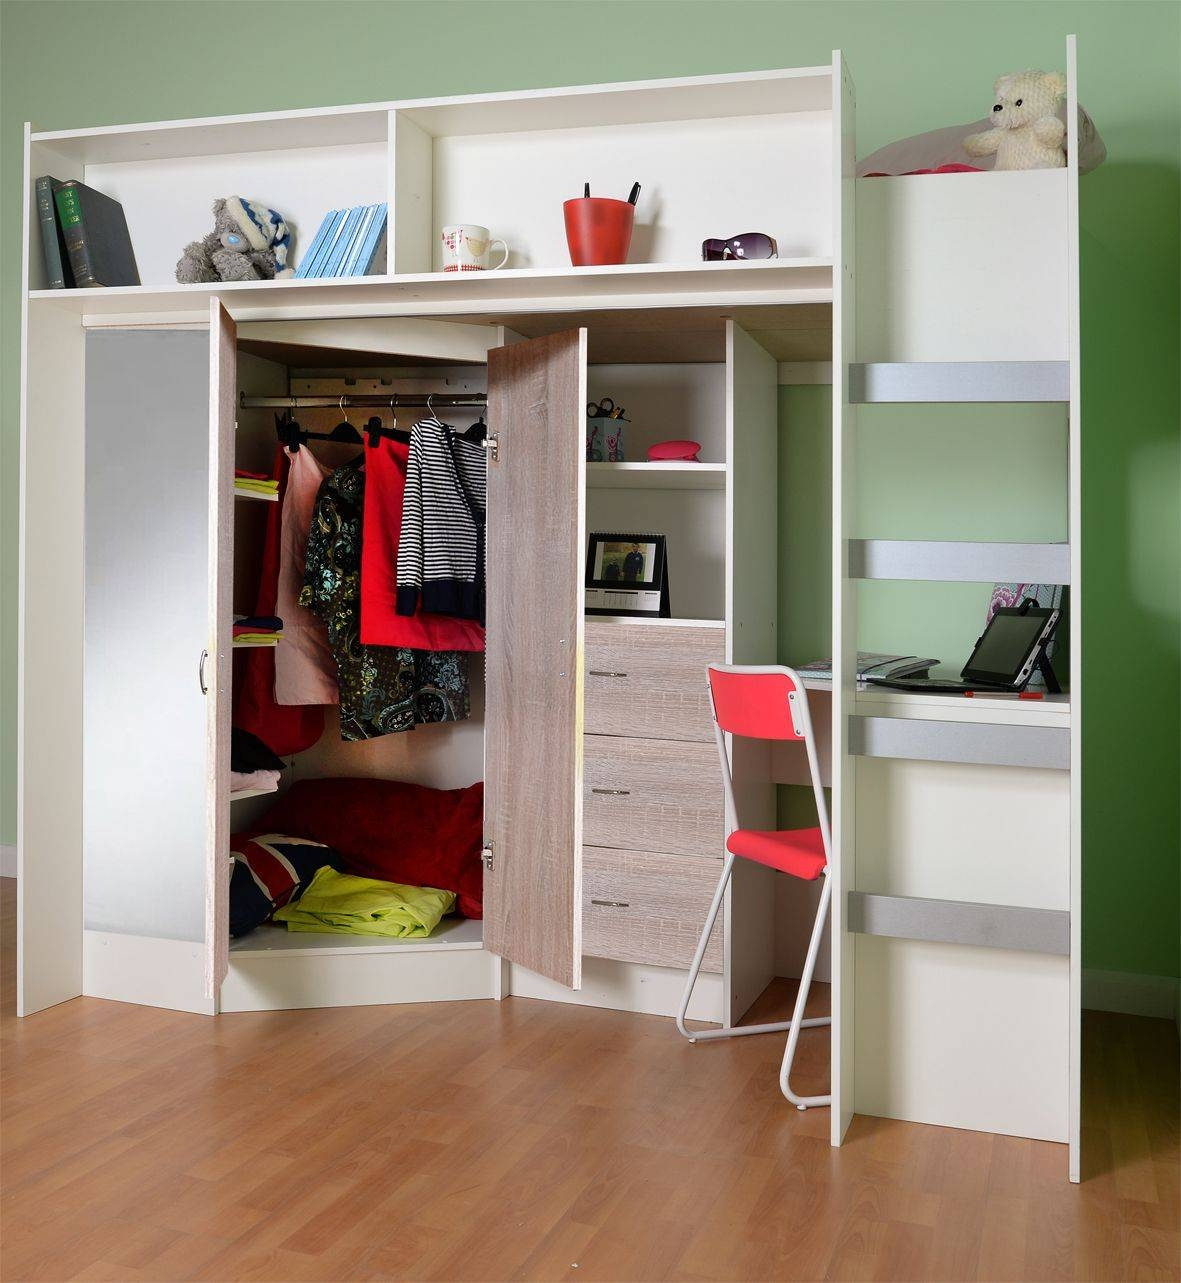 High Sleeper Cabin Bed for Kids Cabin Beds With Wardrobes (Image 5 of 15)